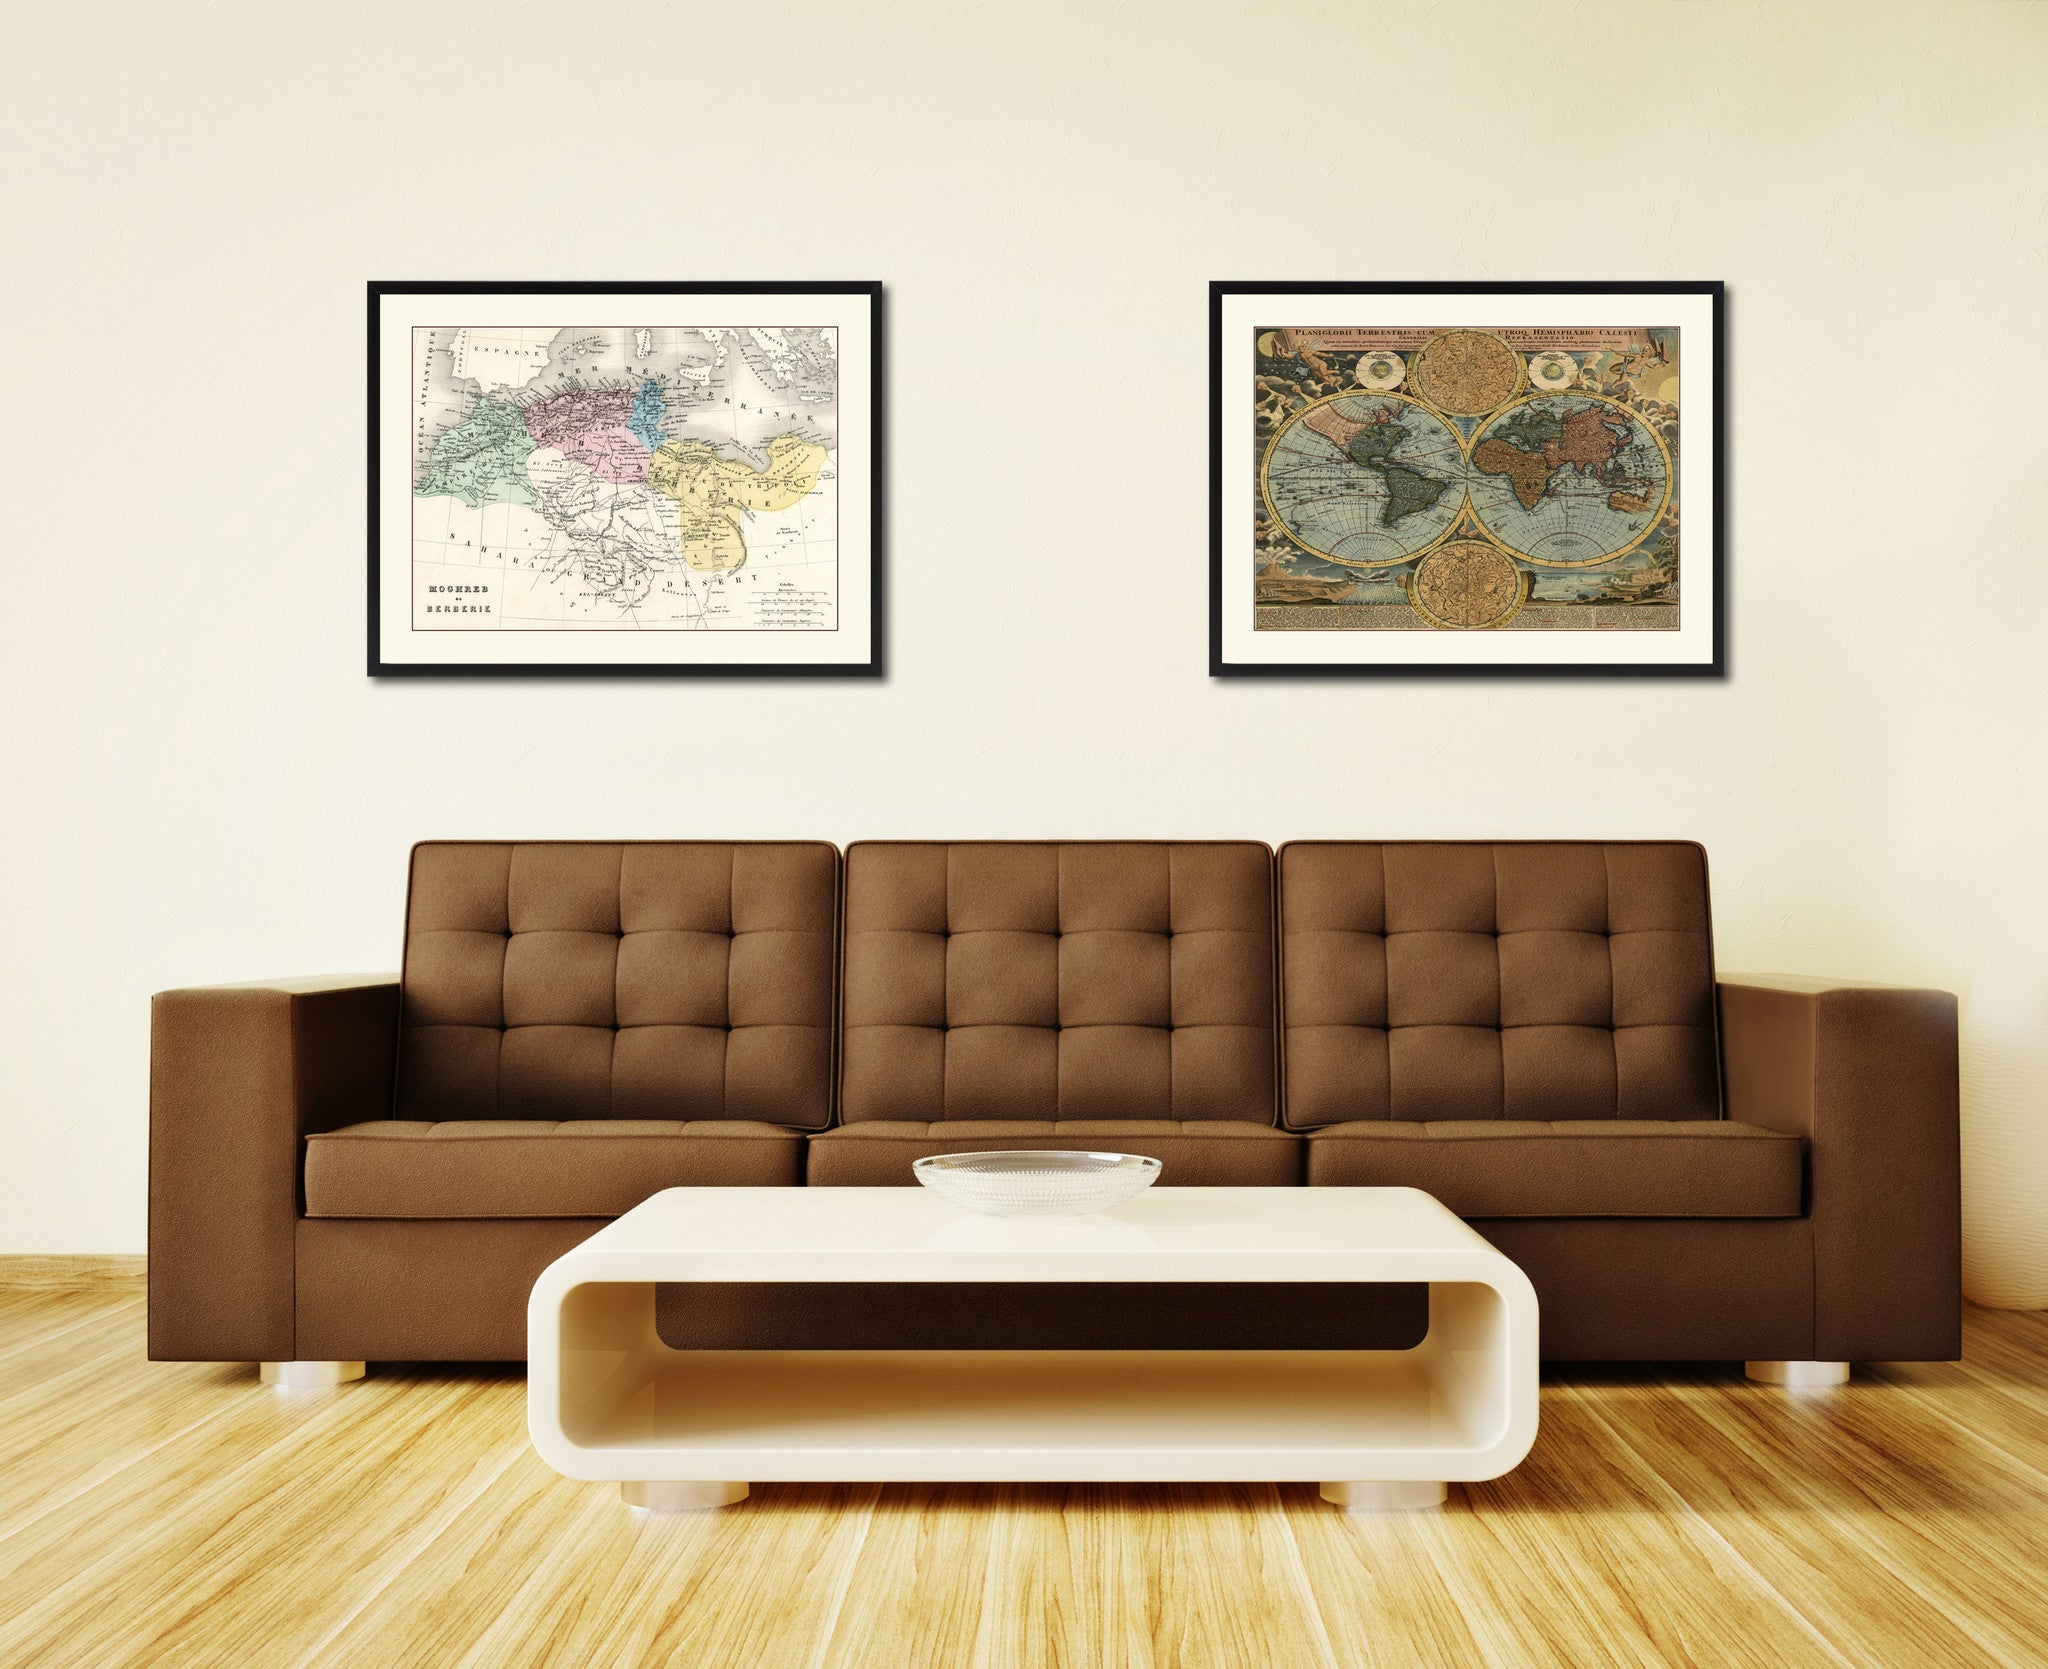 North africa barbary coast vintage antique map wall art for Home frames wall art